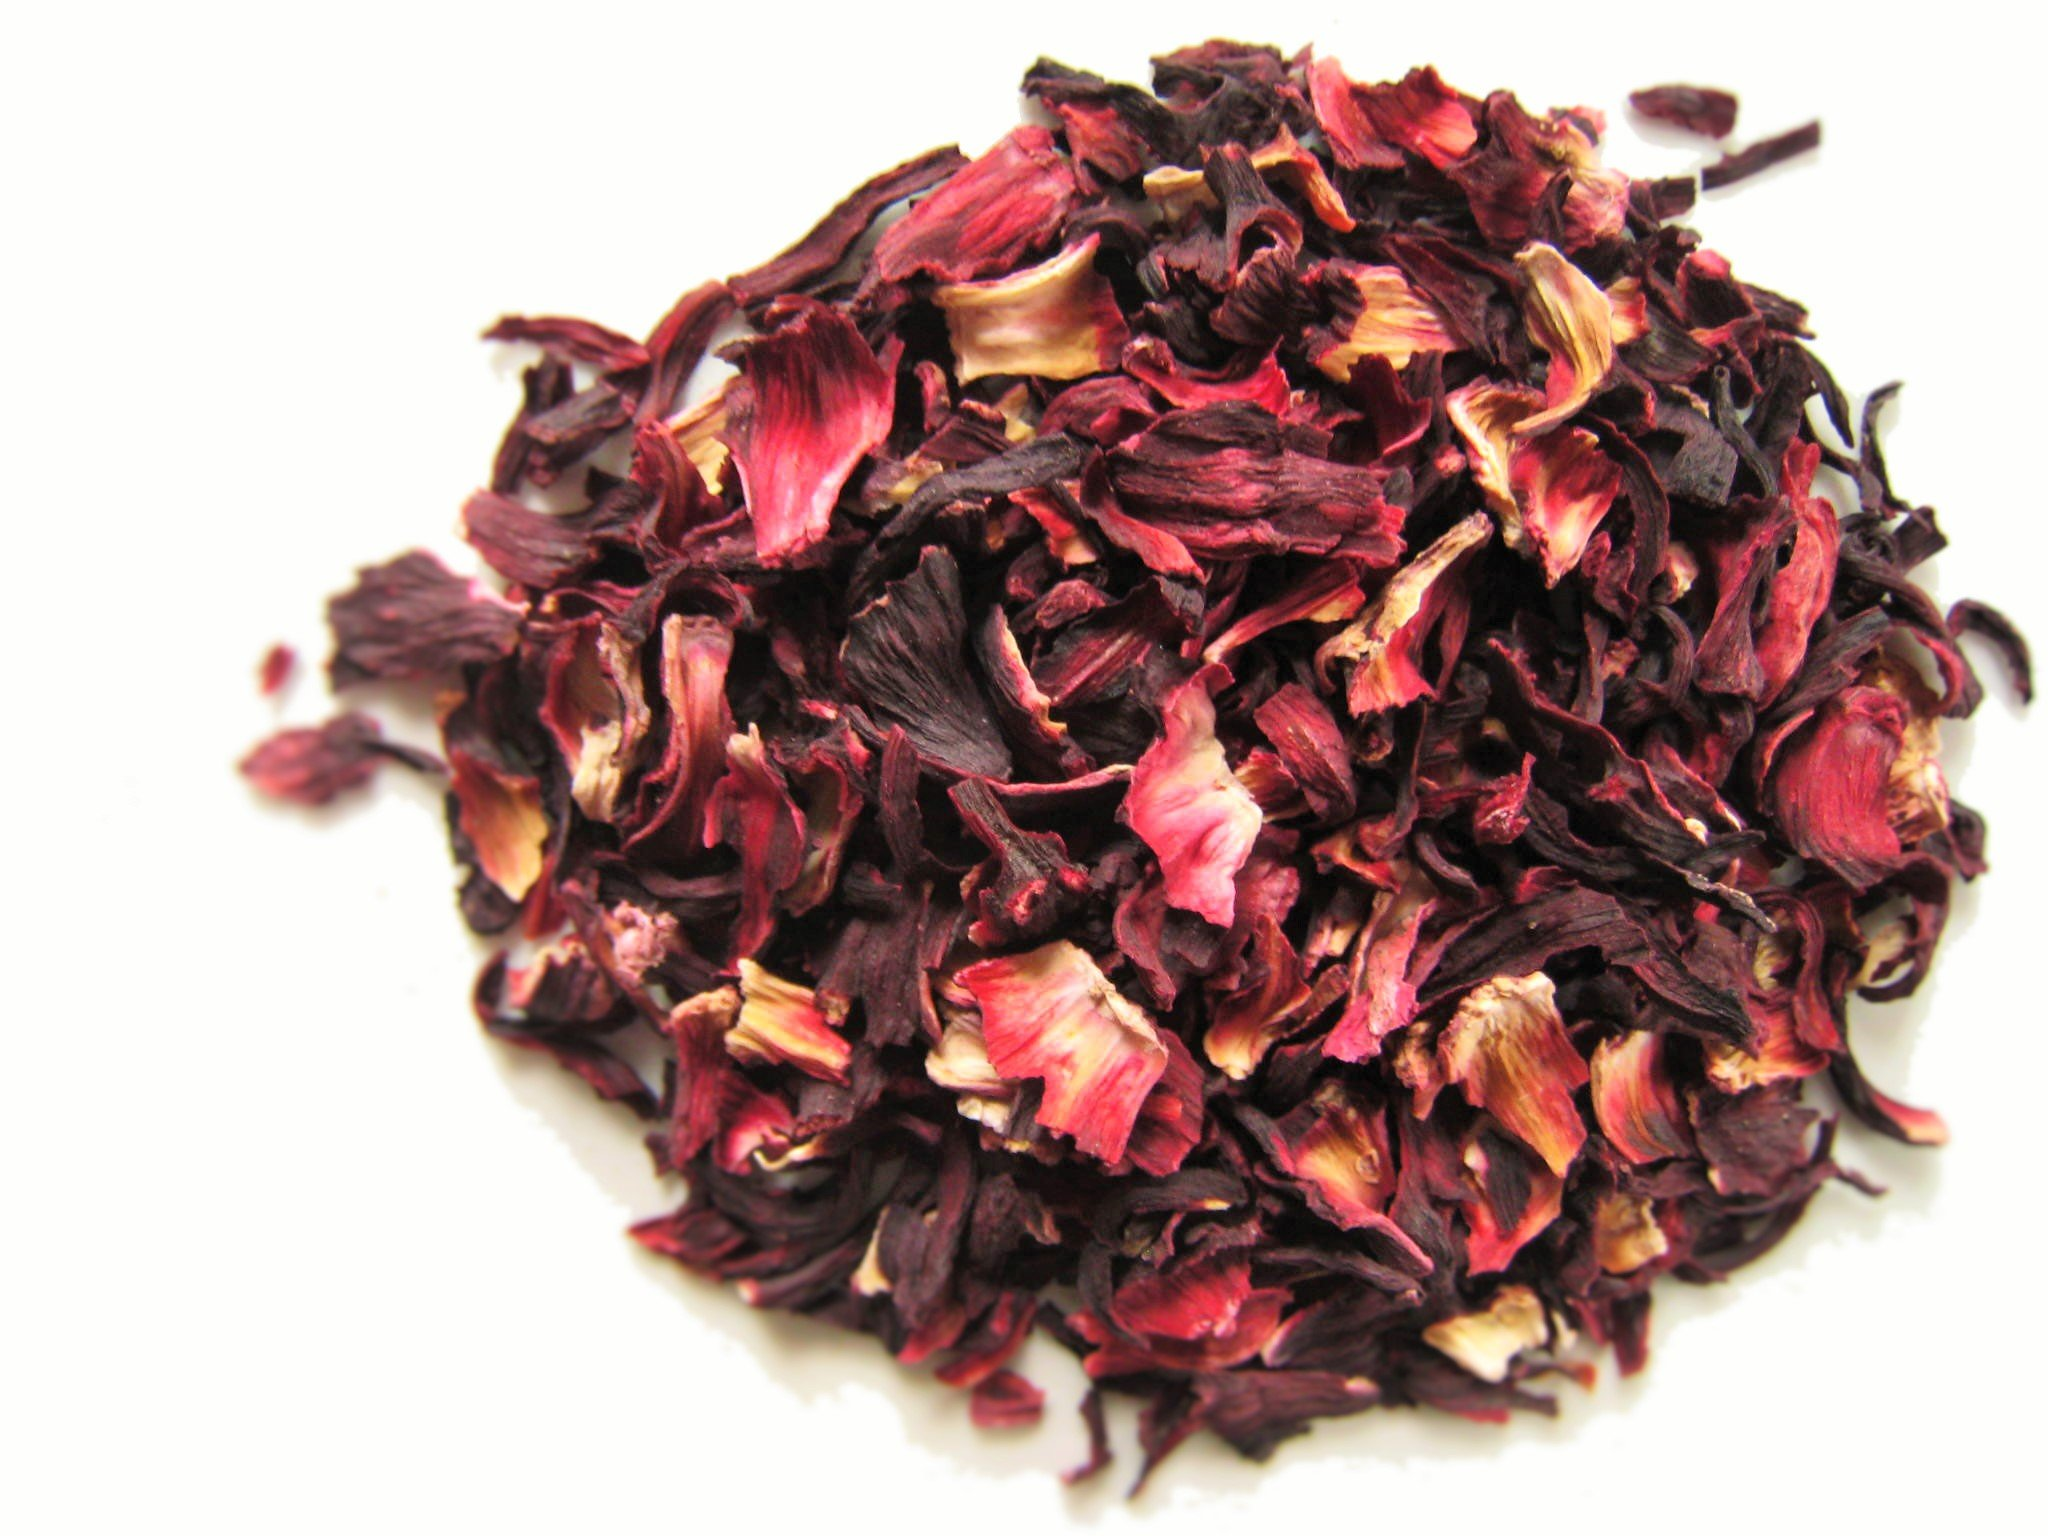 Amazon el molcajete hibiscus flower dried flor de jamaica 8 oz dried hibiscus flowers flor de jamaica 100 natural premium quality herbal teas izmirmasajfo